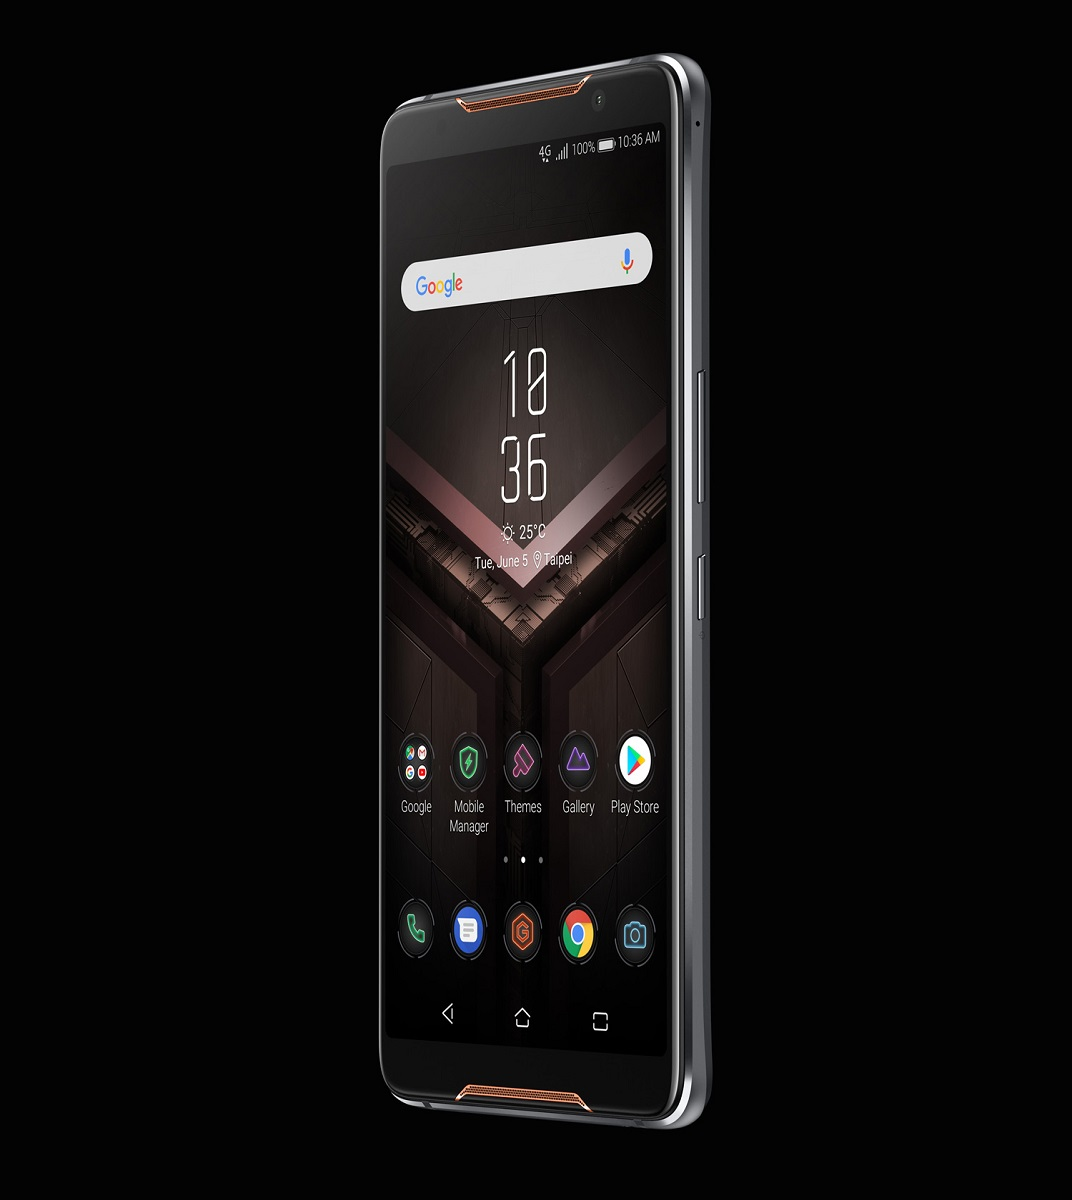 ASUS ROG Phone has an overclocked Snapdragon 845 and 90Hz